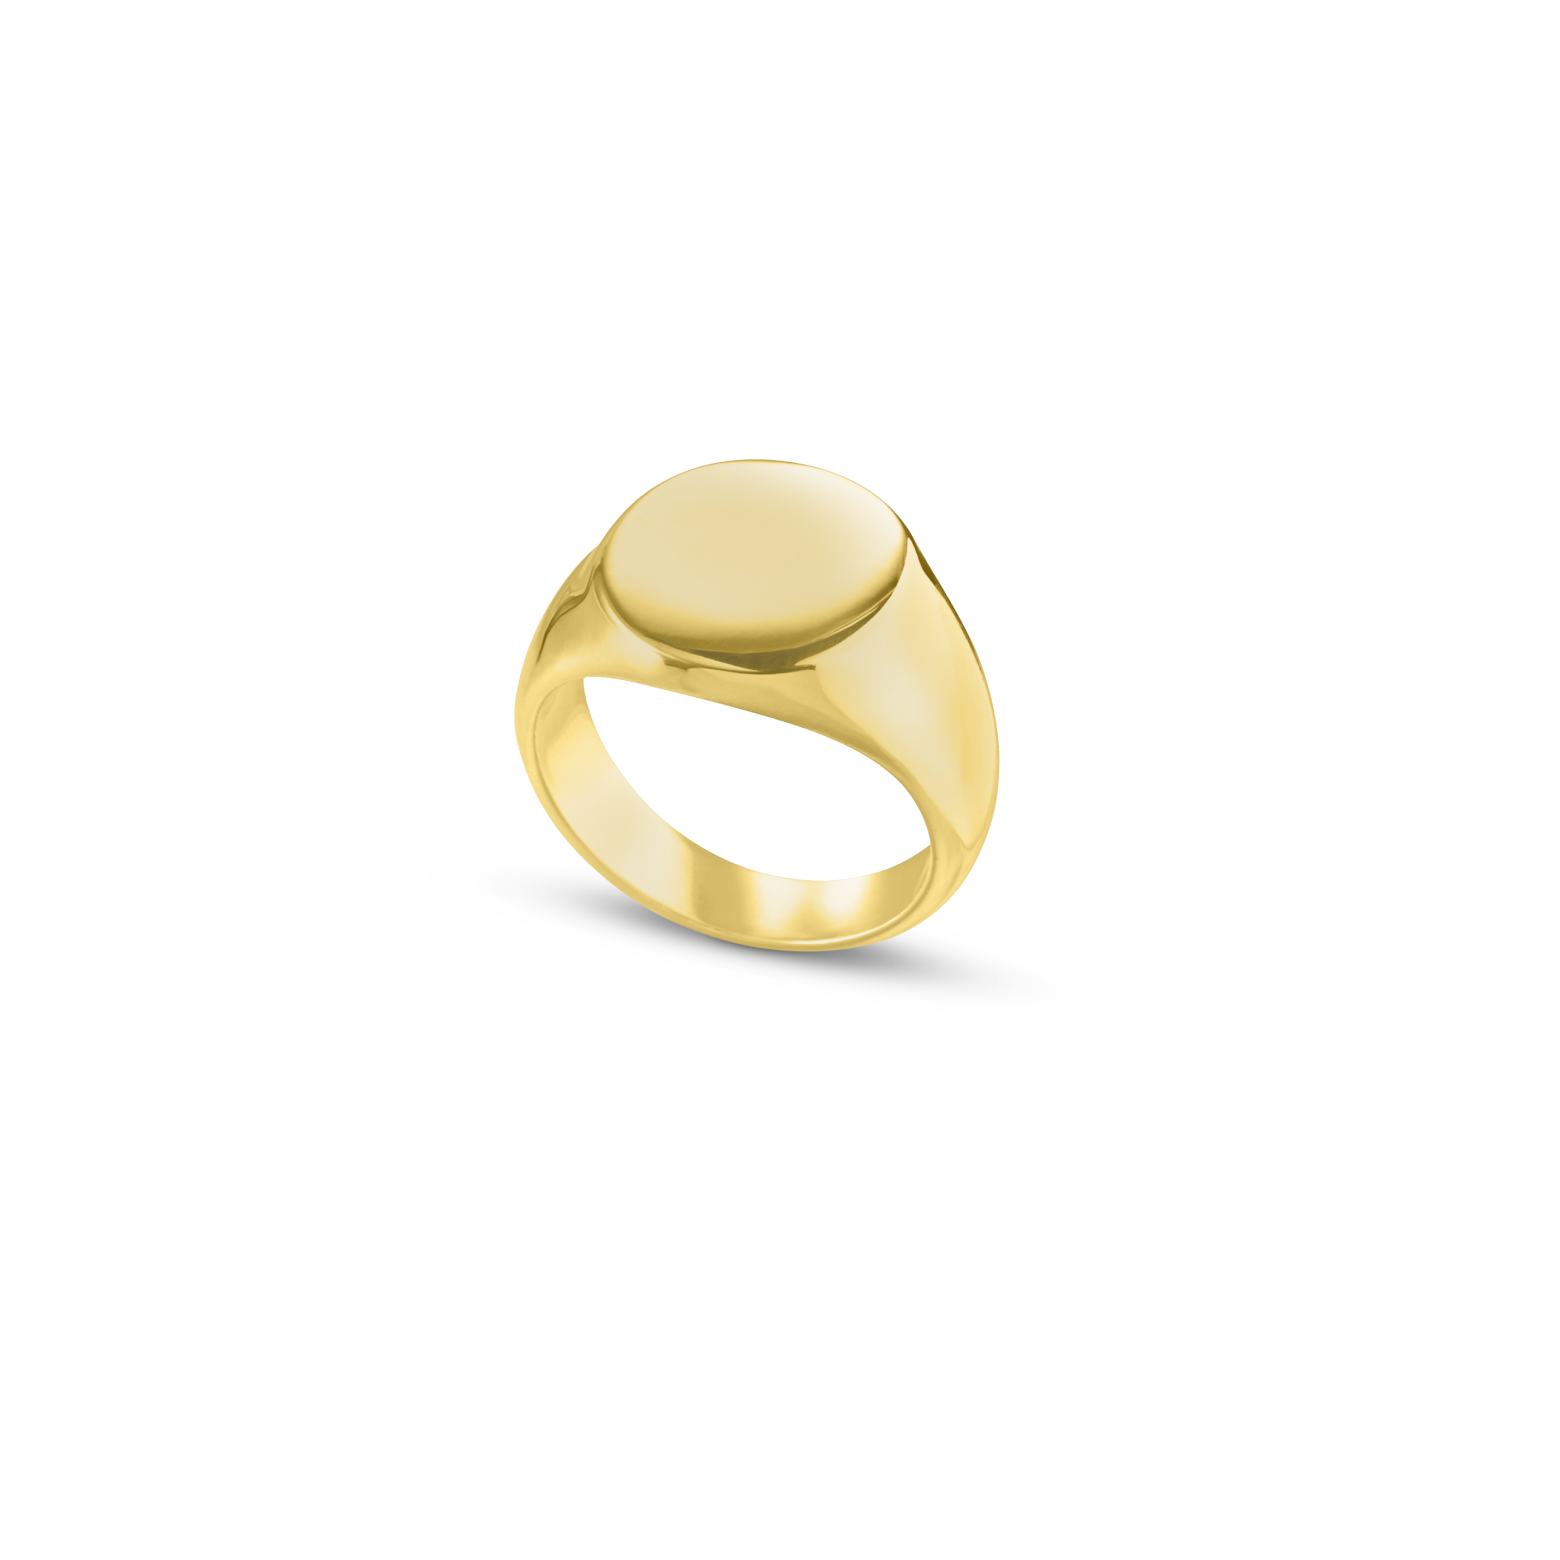 The Round Signet Ring